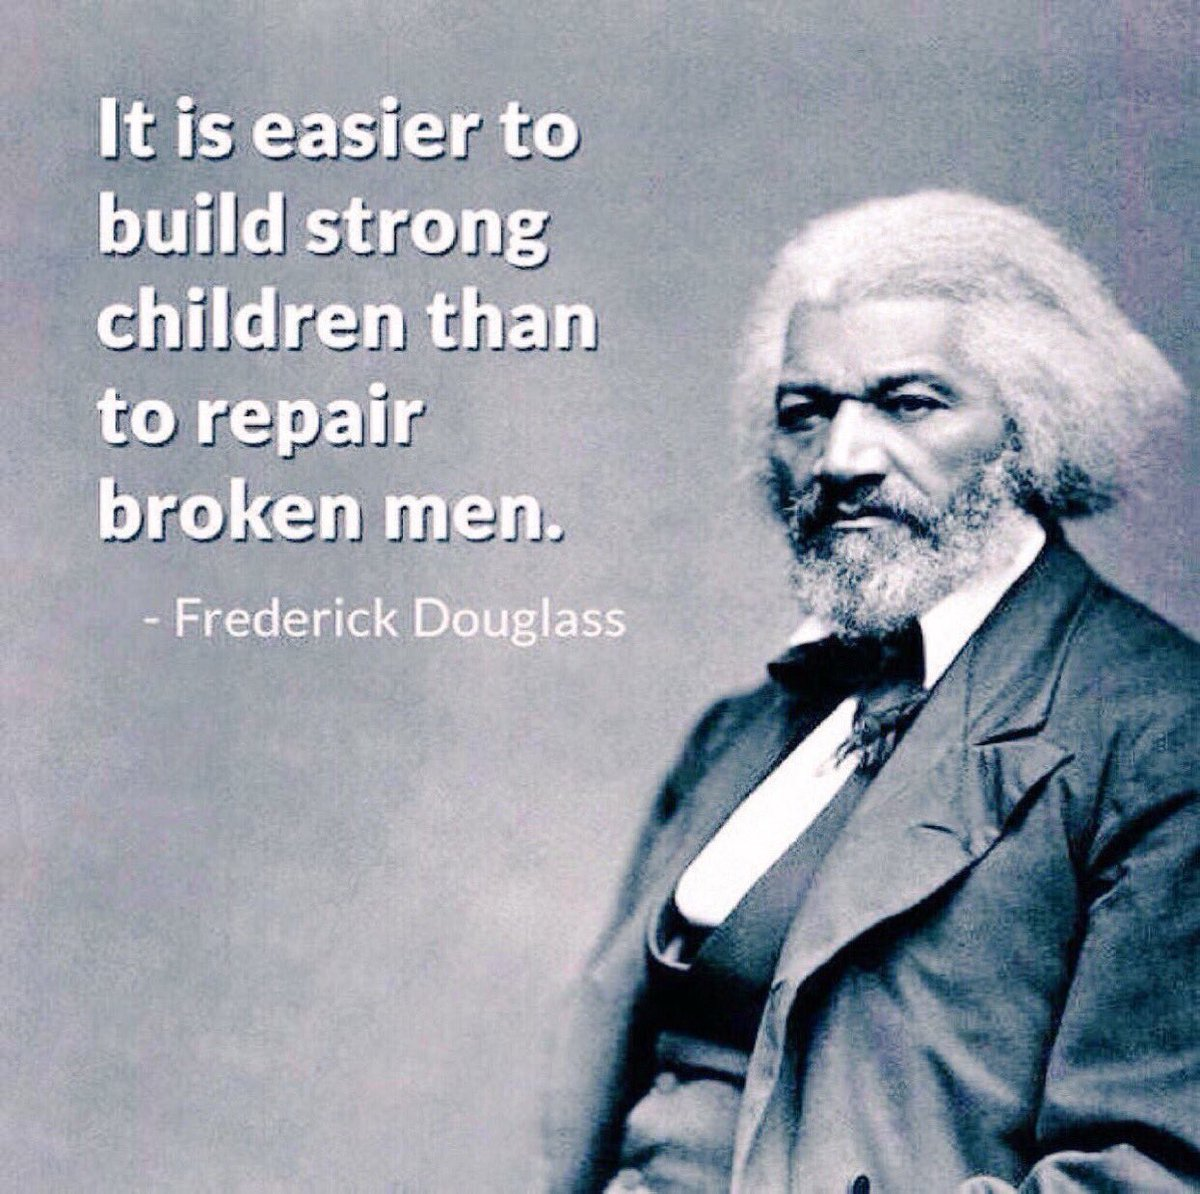 &quot;It is Easier to Build Strong Children  than to Repair Broken Men&quot;  Fredrick Douglass       #1u #CanLab #ThursdayThoughts  #Equality <br>http://pic.twitter.com/cgIYmEX290